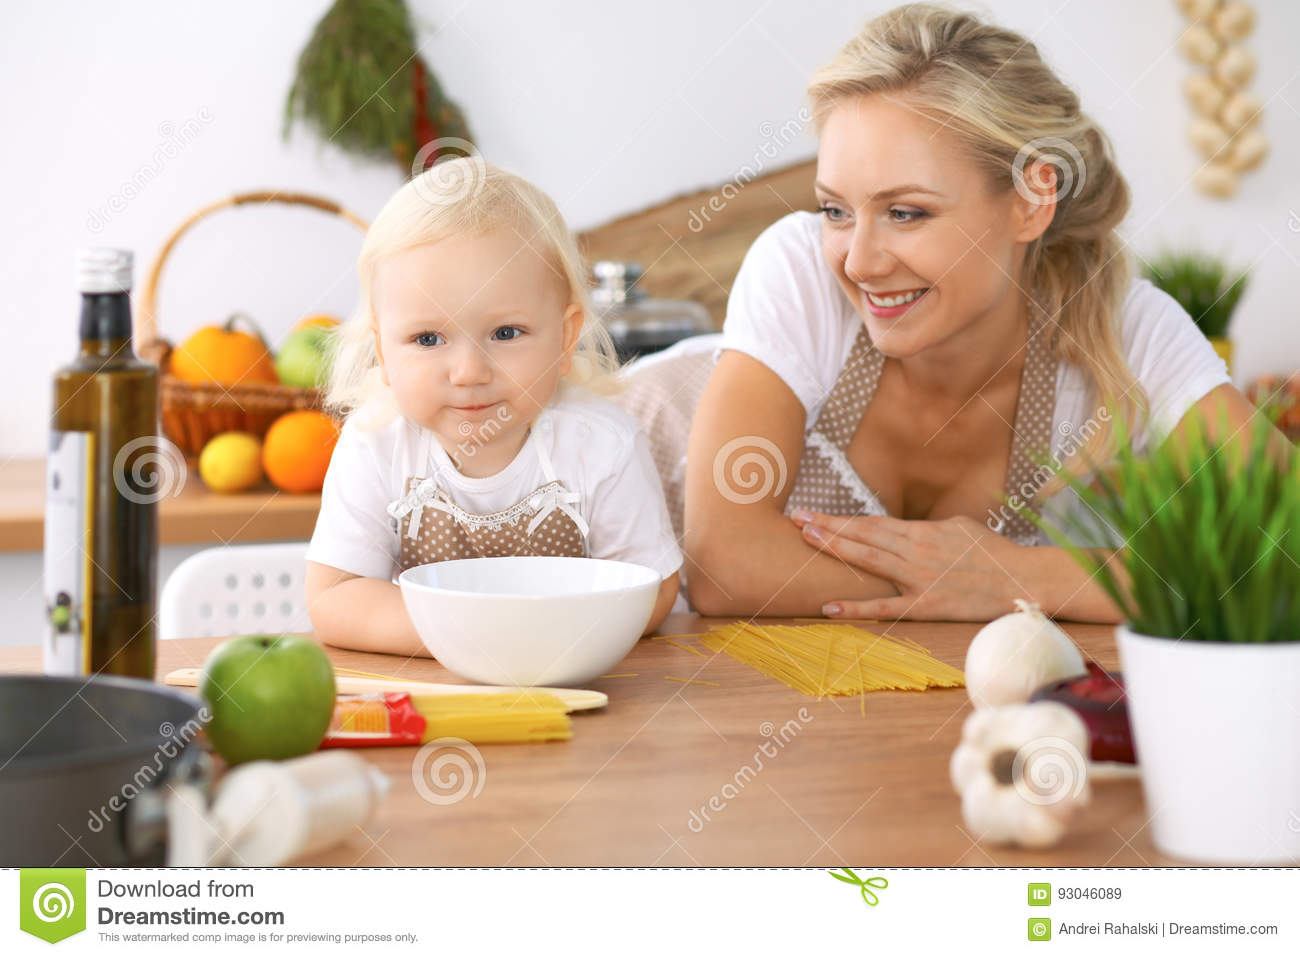 Happy family in kitchen - Happy Family In The Kitchen Mother And Child Daughter Cooking Tasty Breakfest Stock Photo